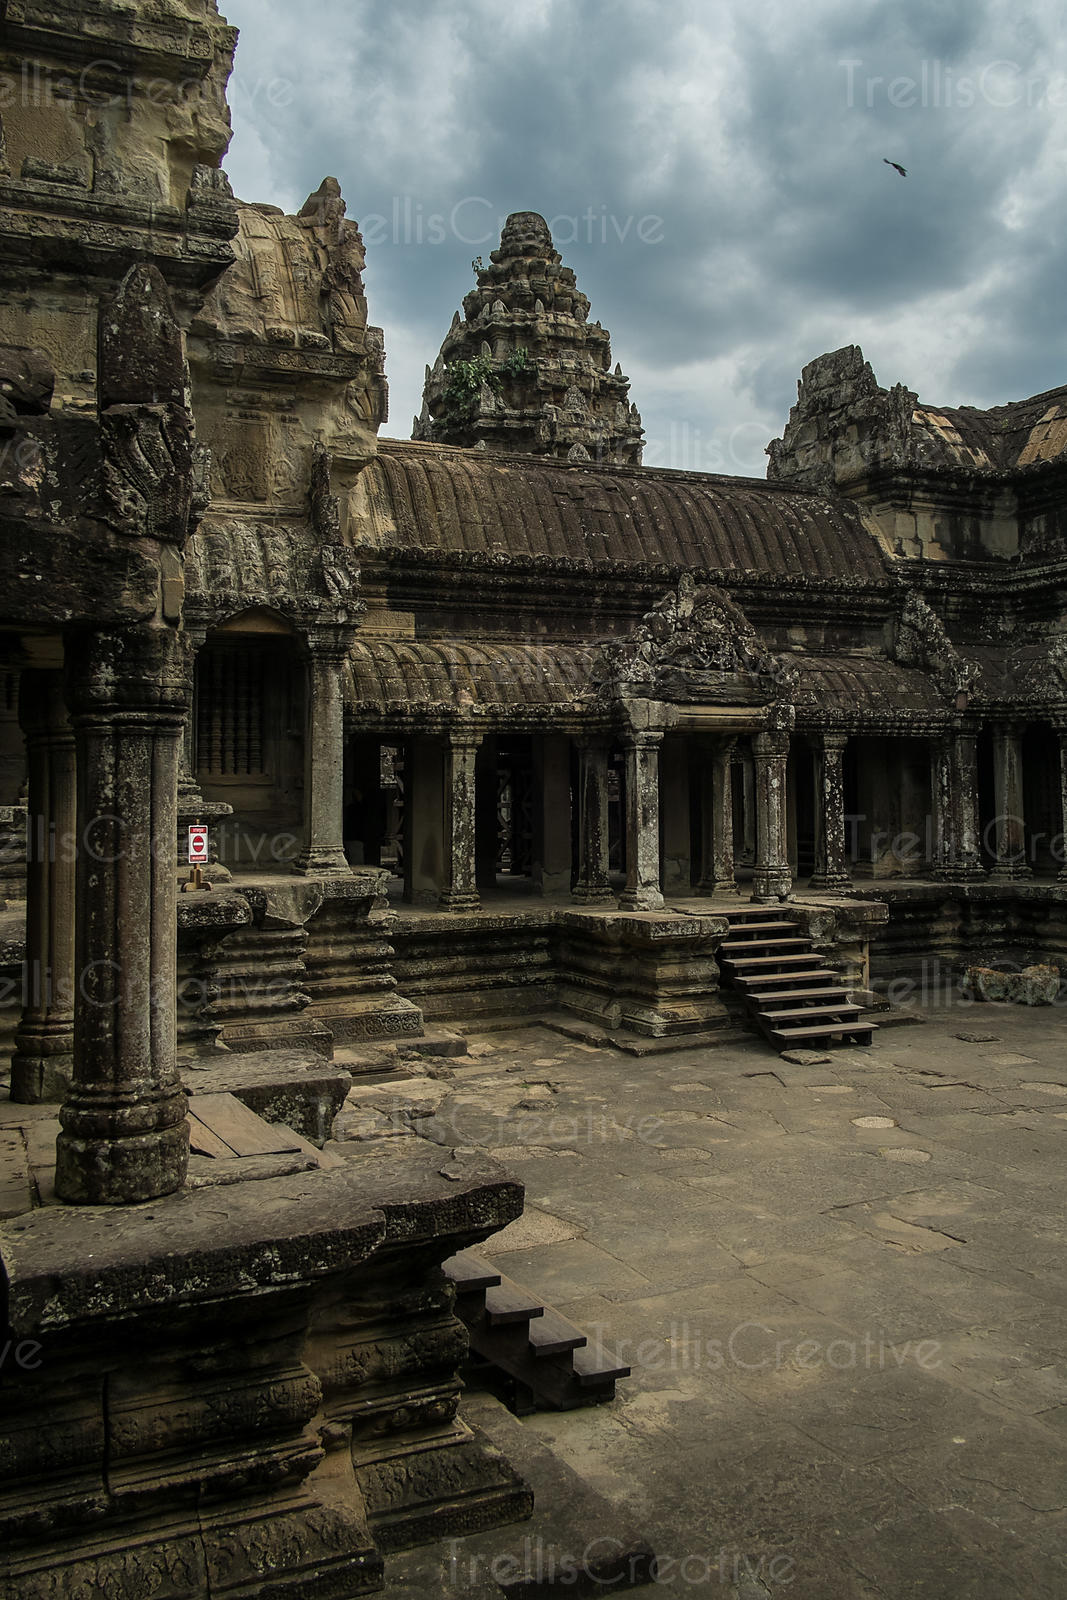 Old temple at Angkor Wat, Cambodia under dramatic storm clouds